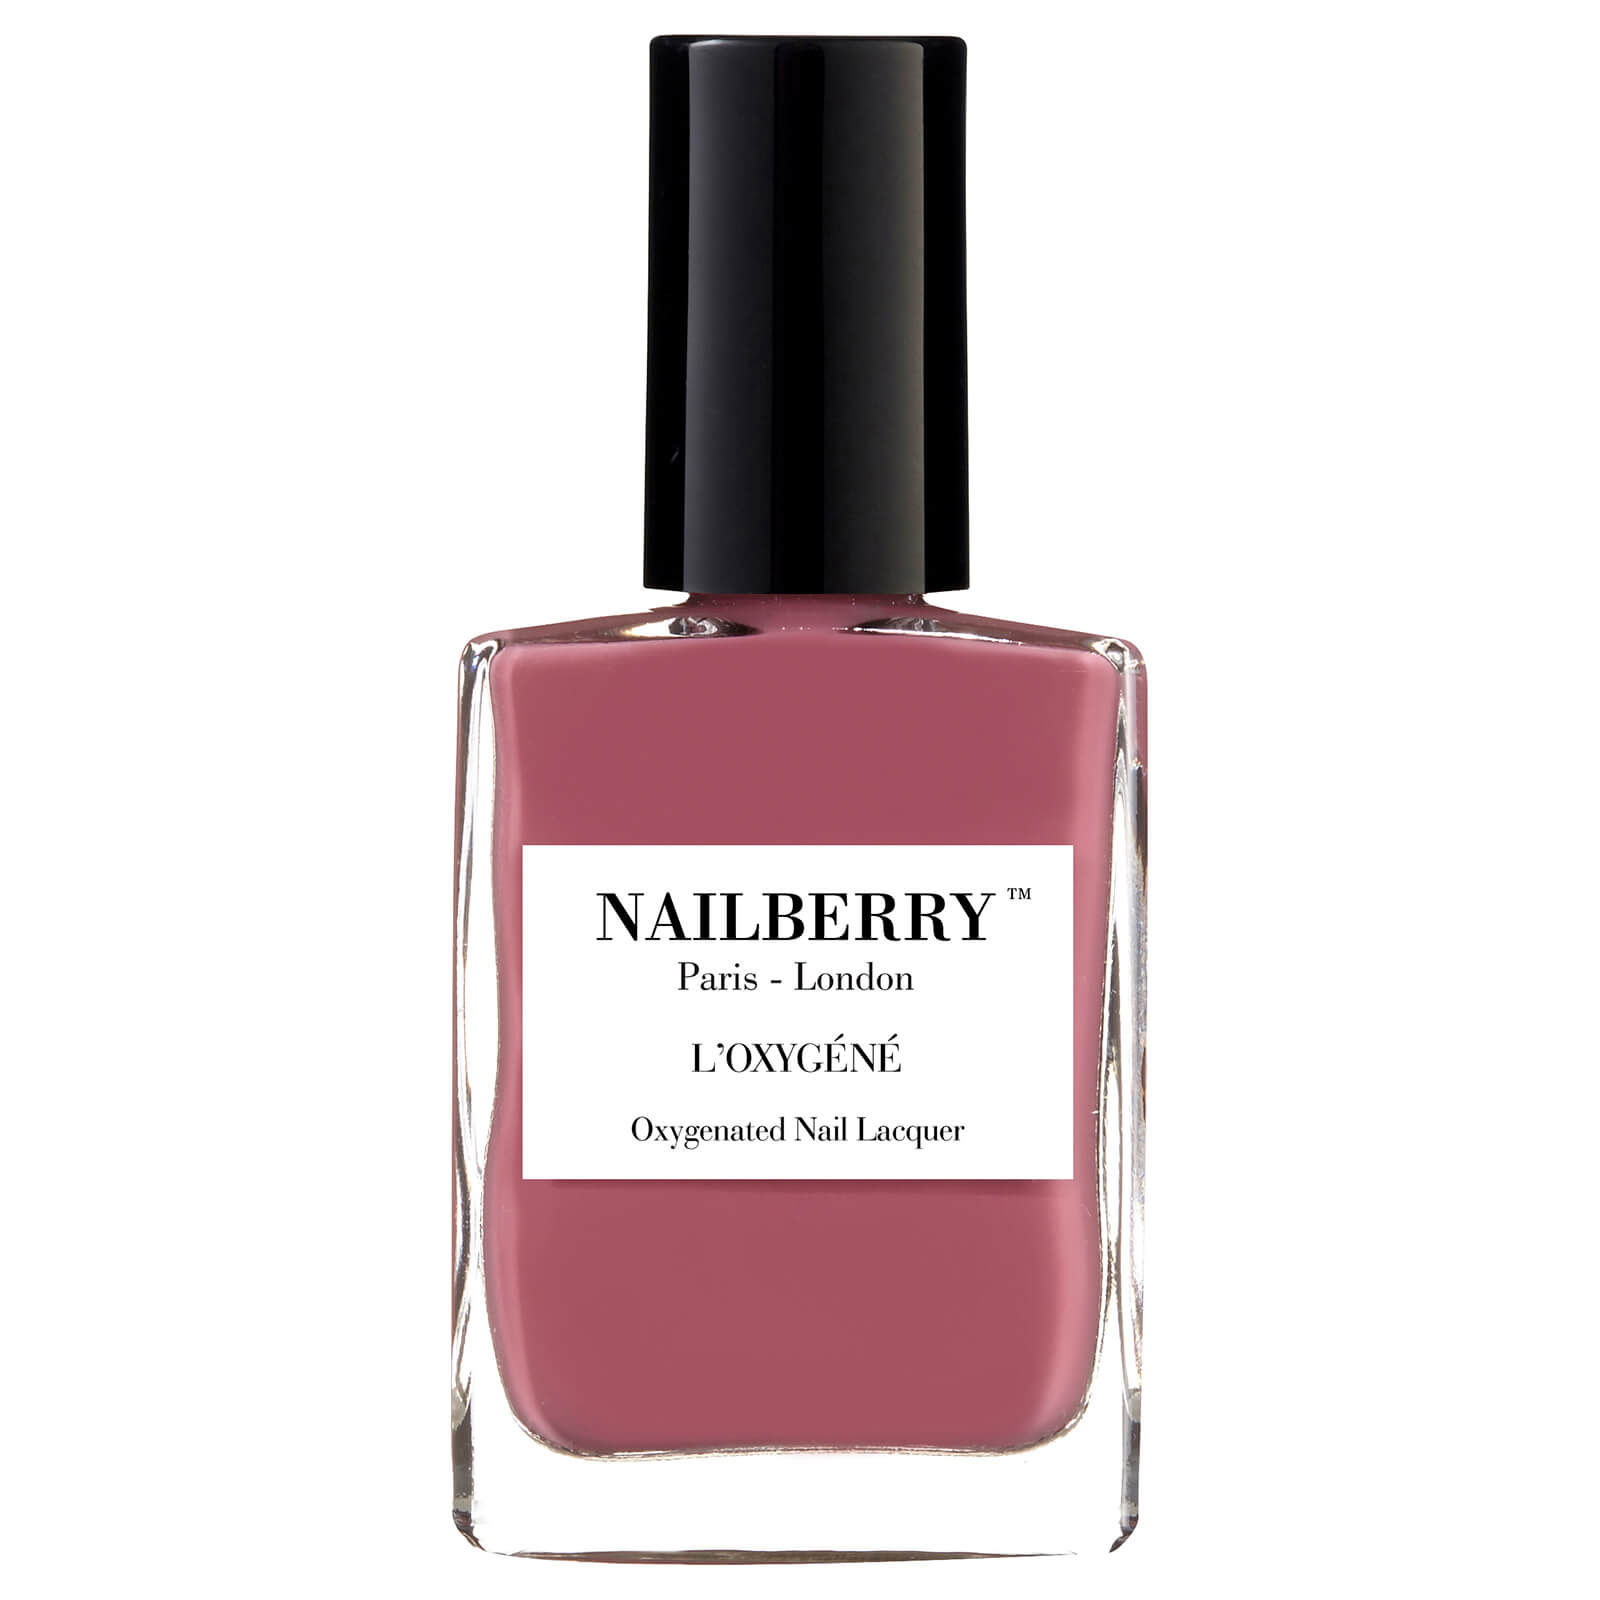 Nailberry L'Oxygene Nail Lacquer Fashionista